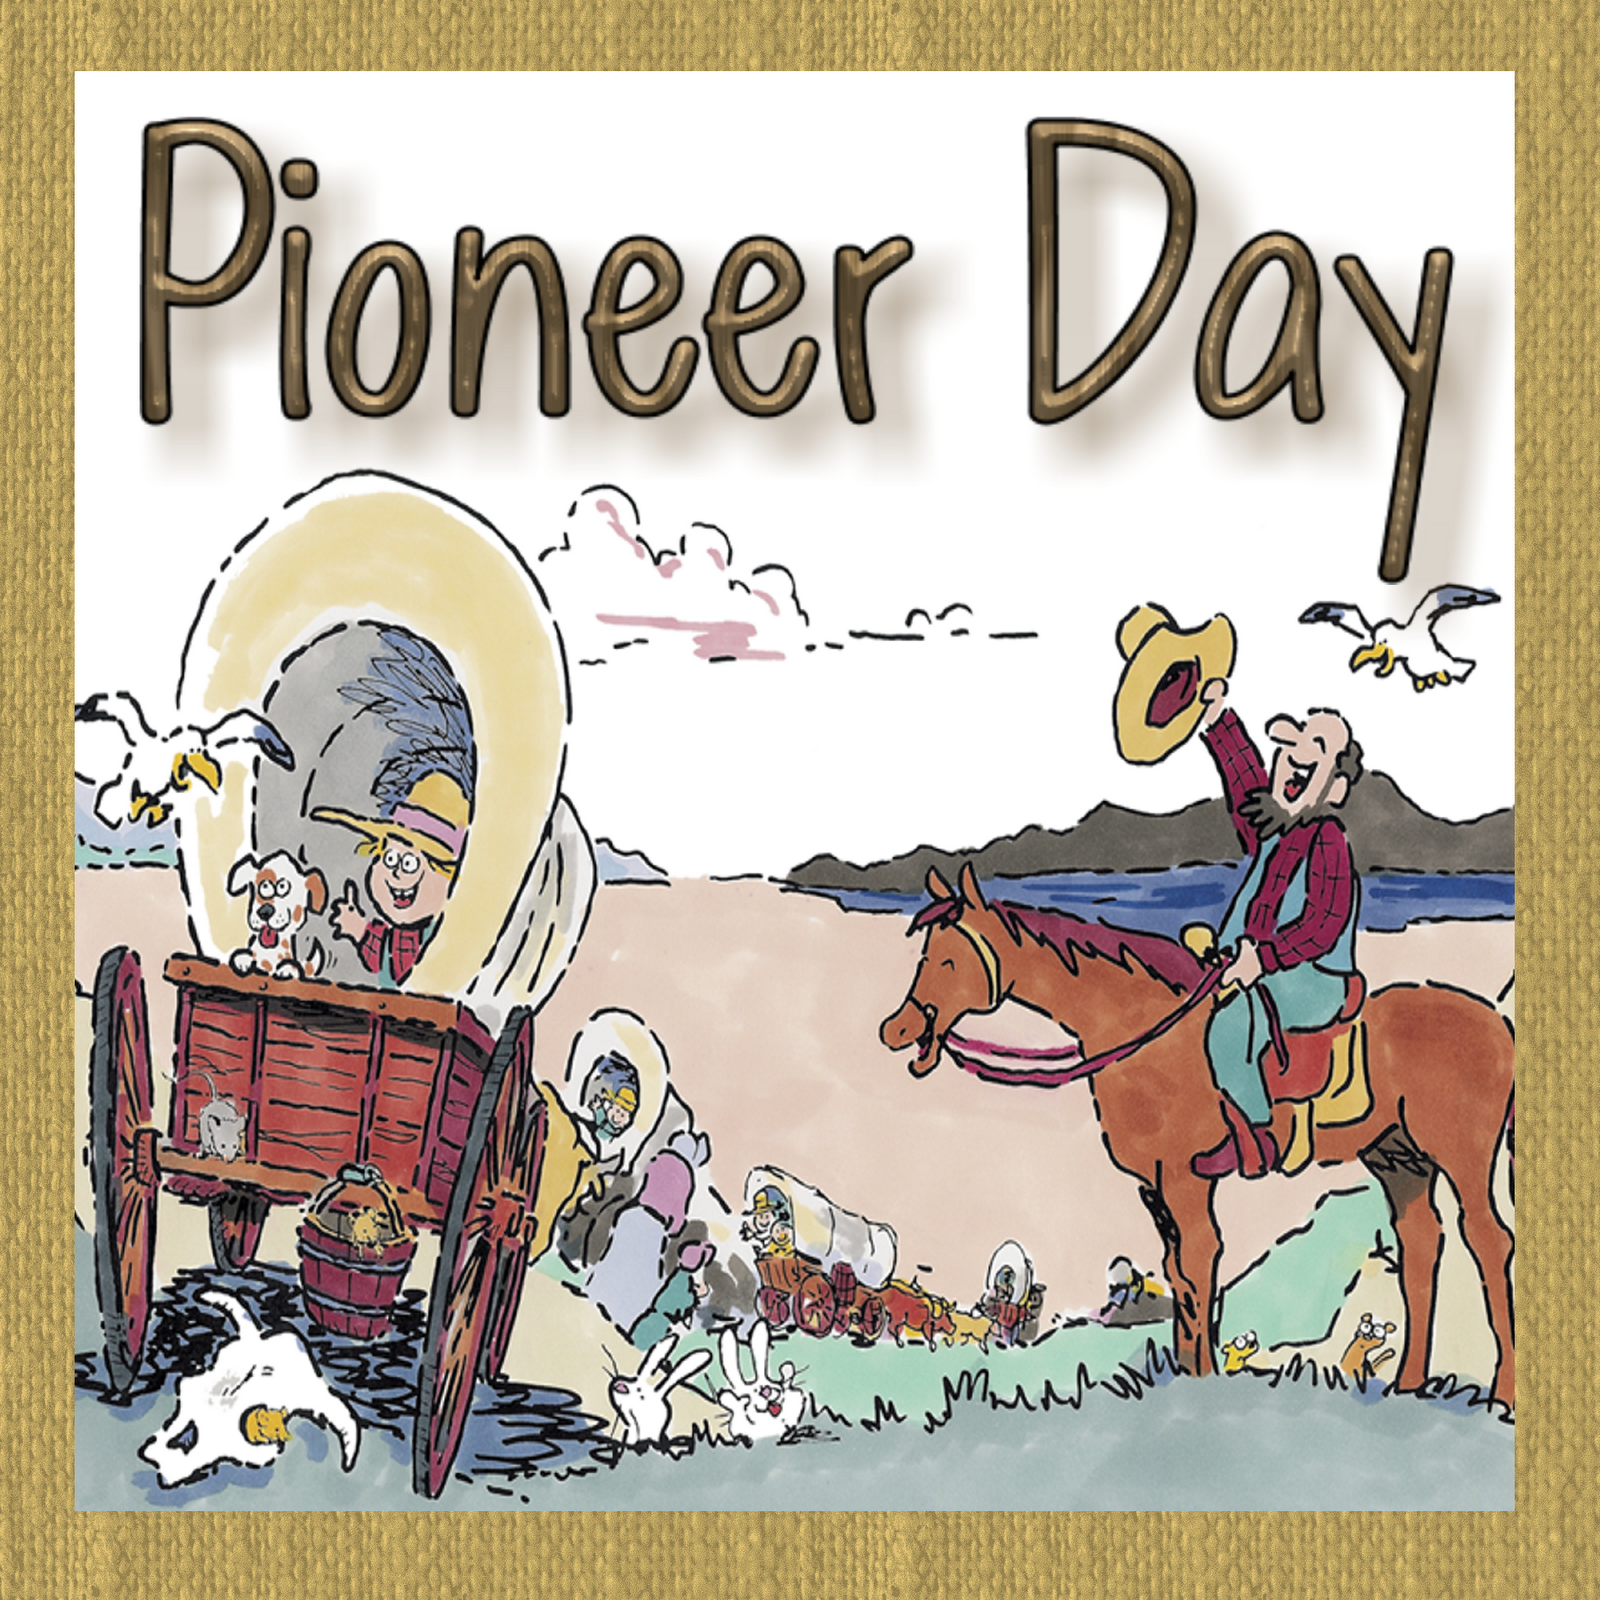 Pioneer clipart cute. Cilpart gorgeous ideas day